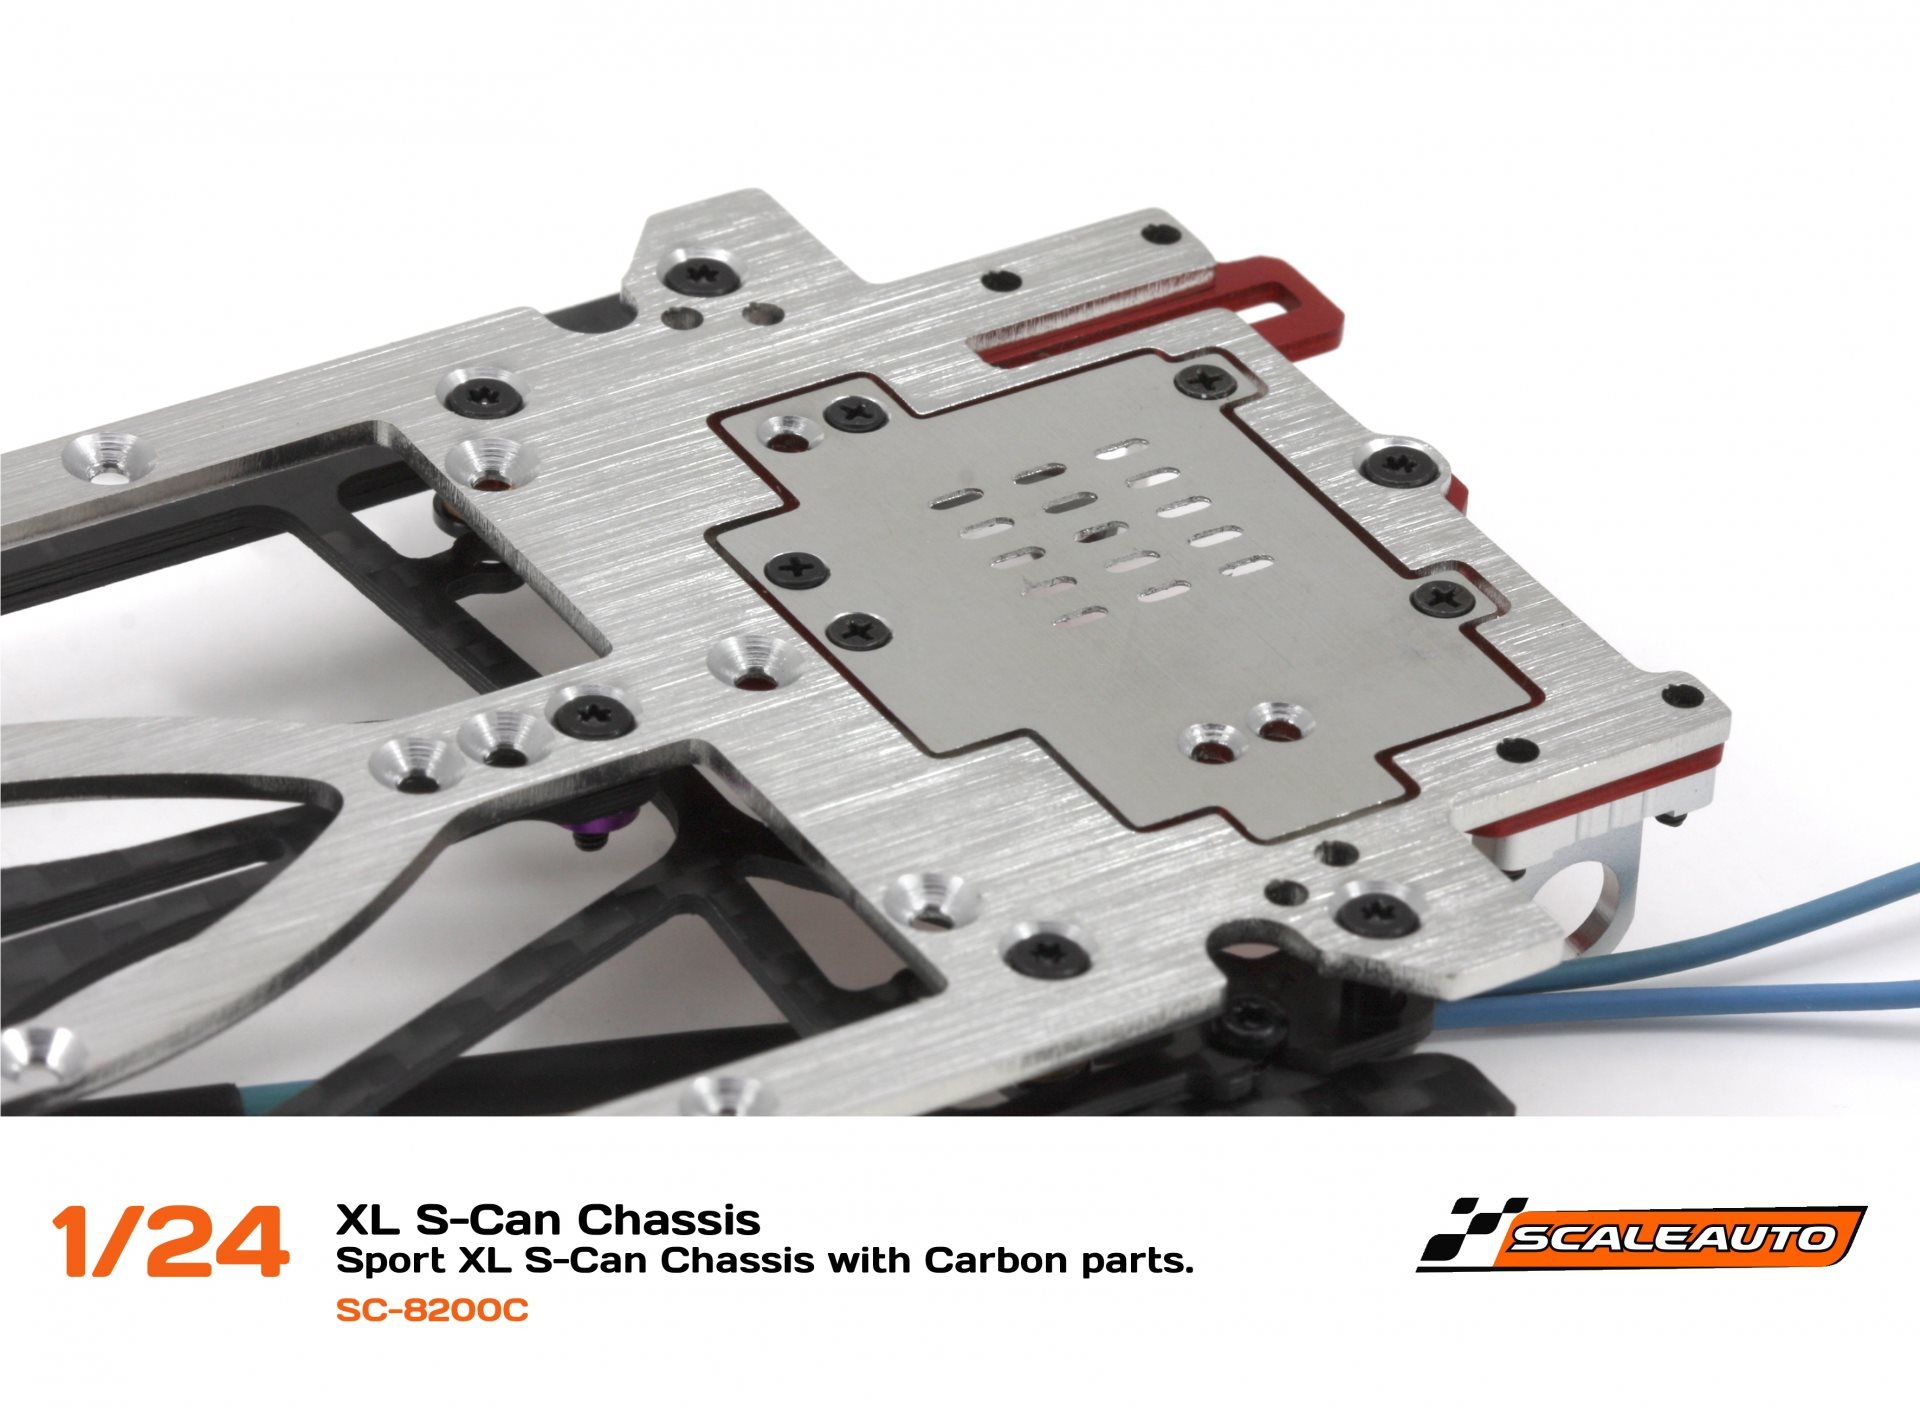 Scaleauto - chassis XL S-Can